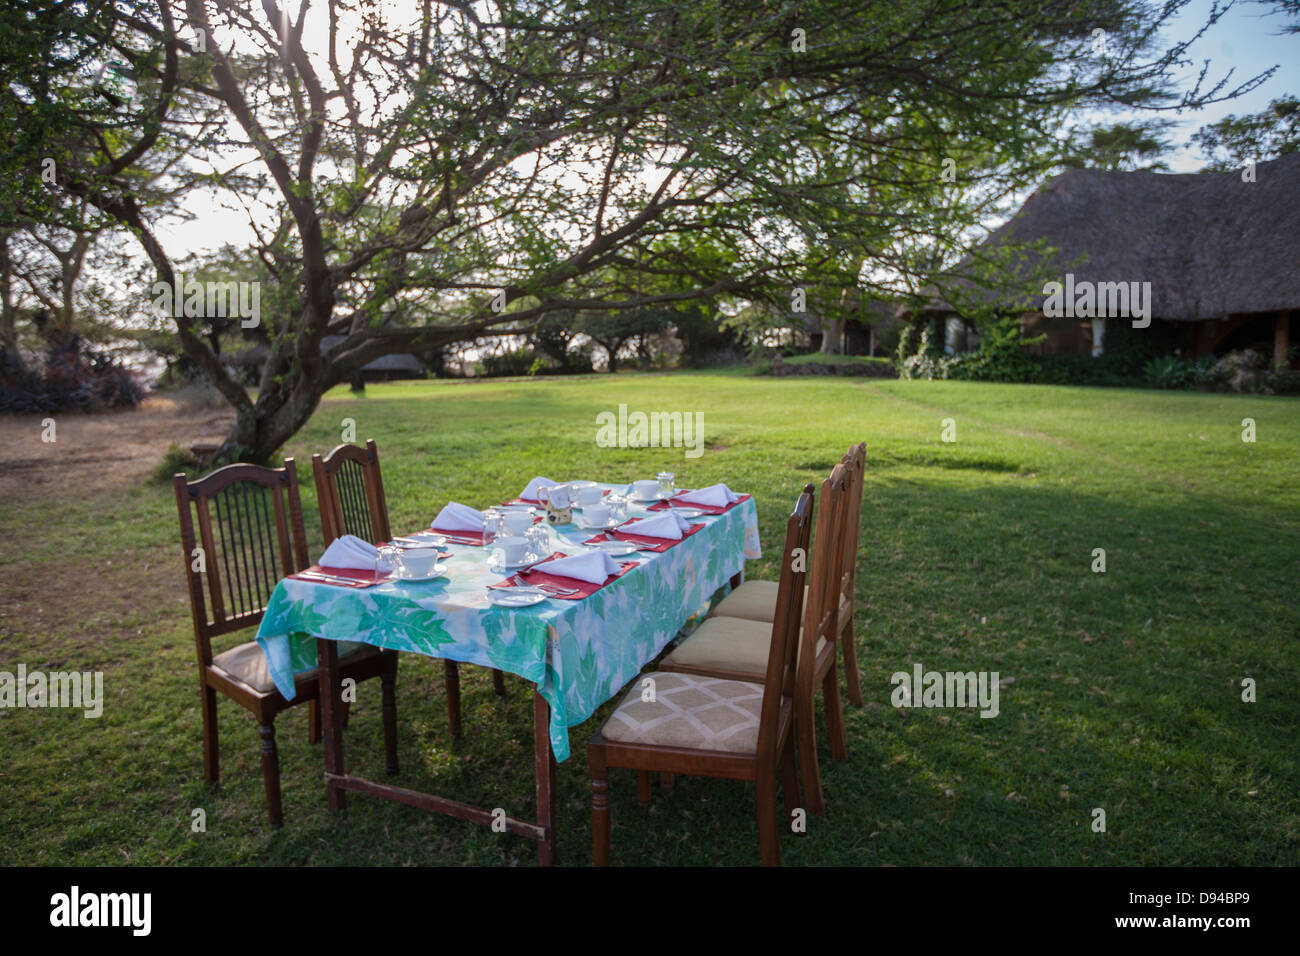 outdoor table setting on a grassy lawn under a tree - Stock Image